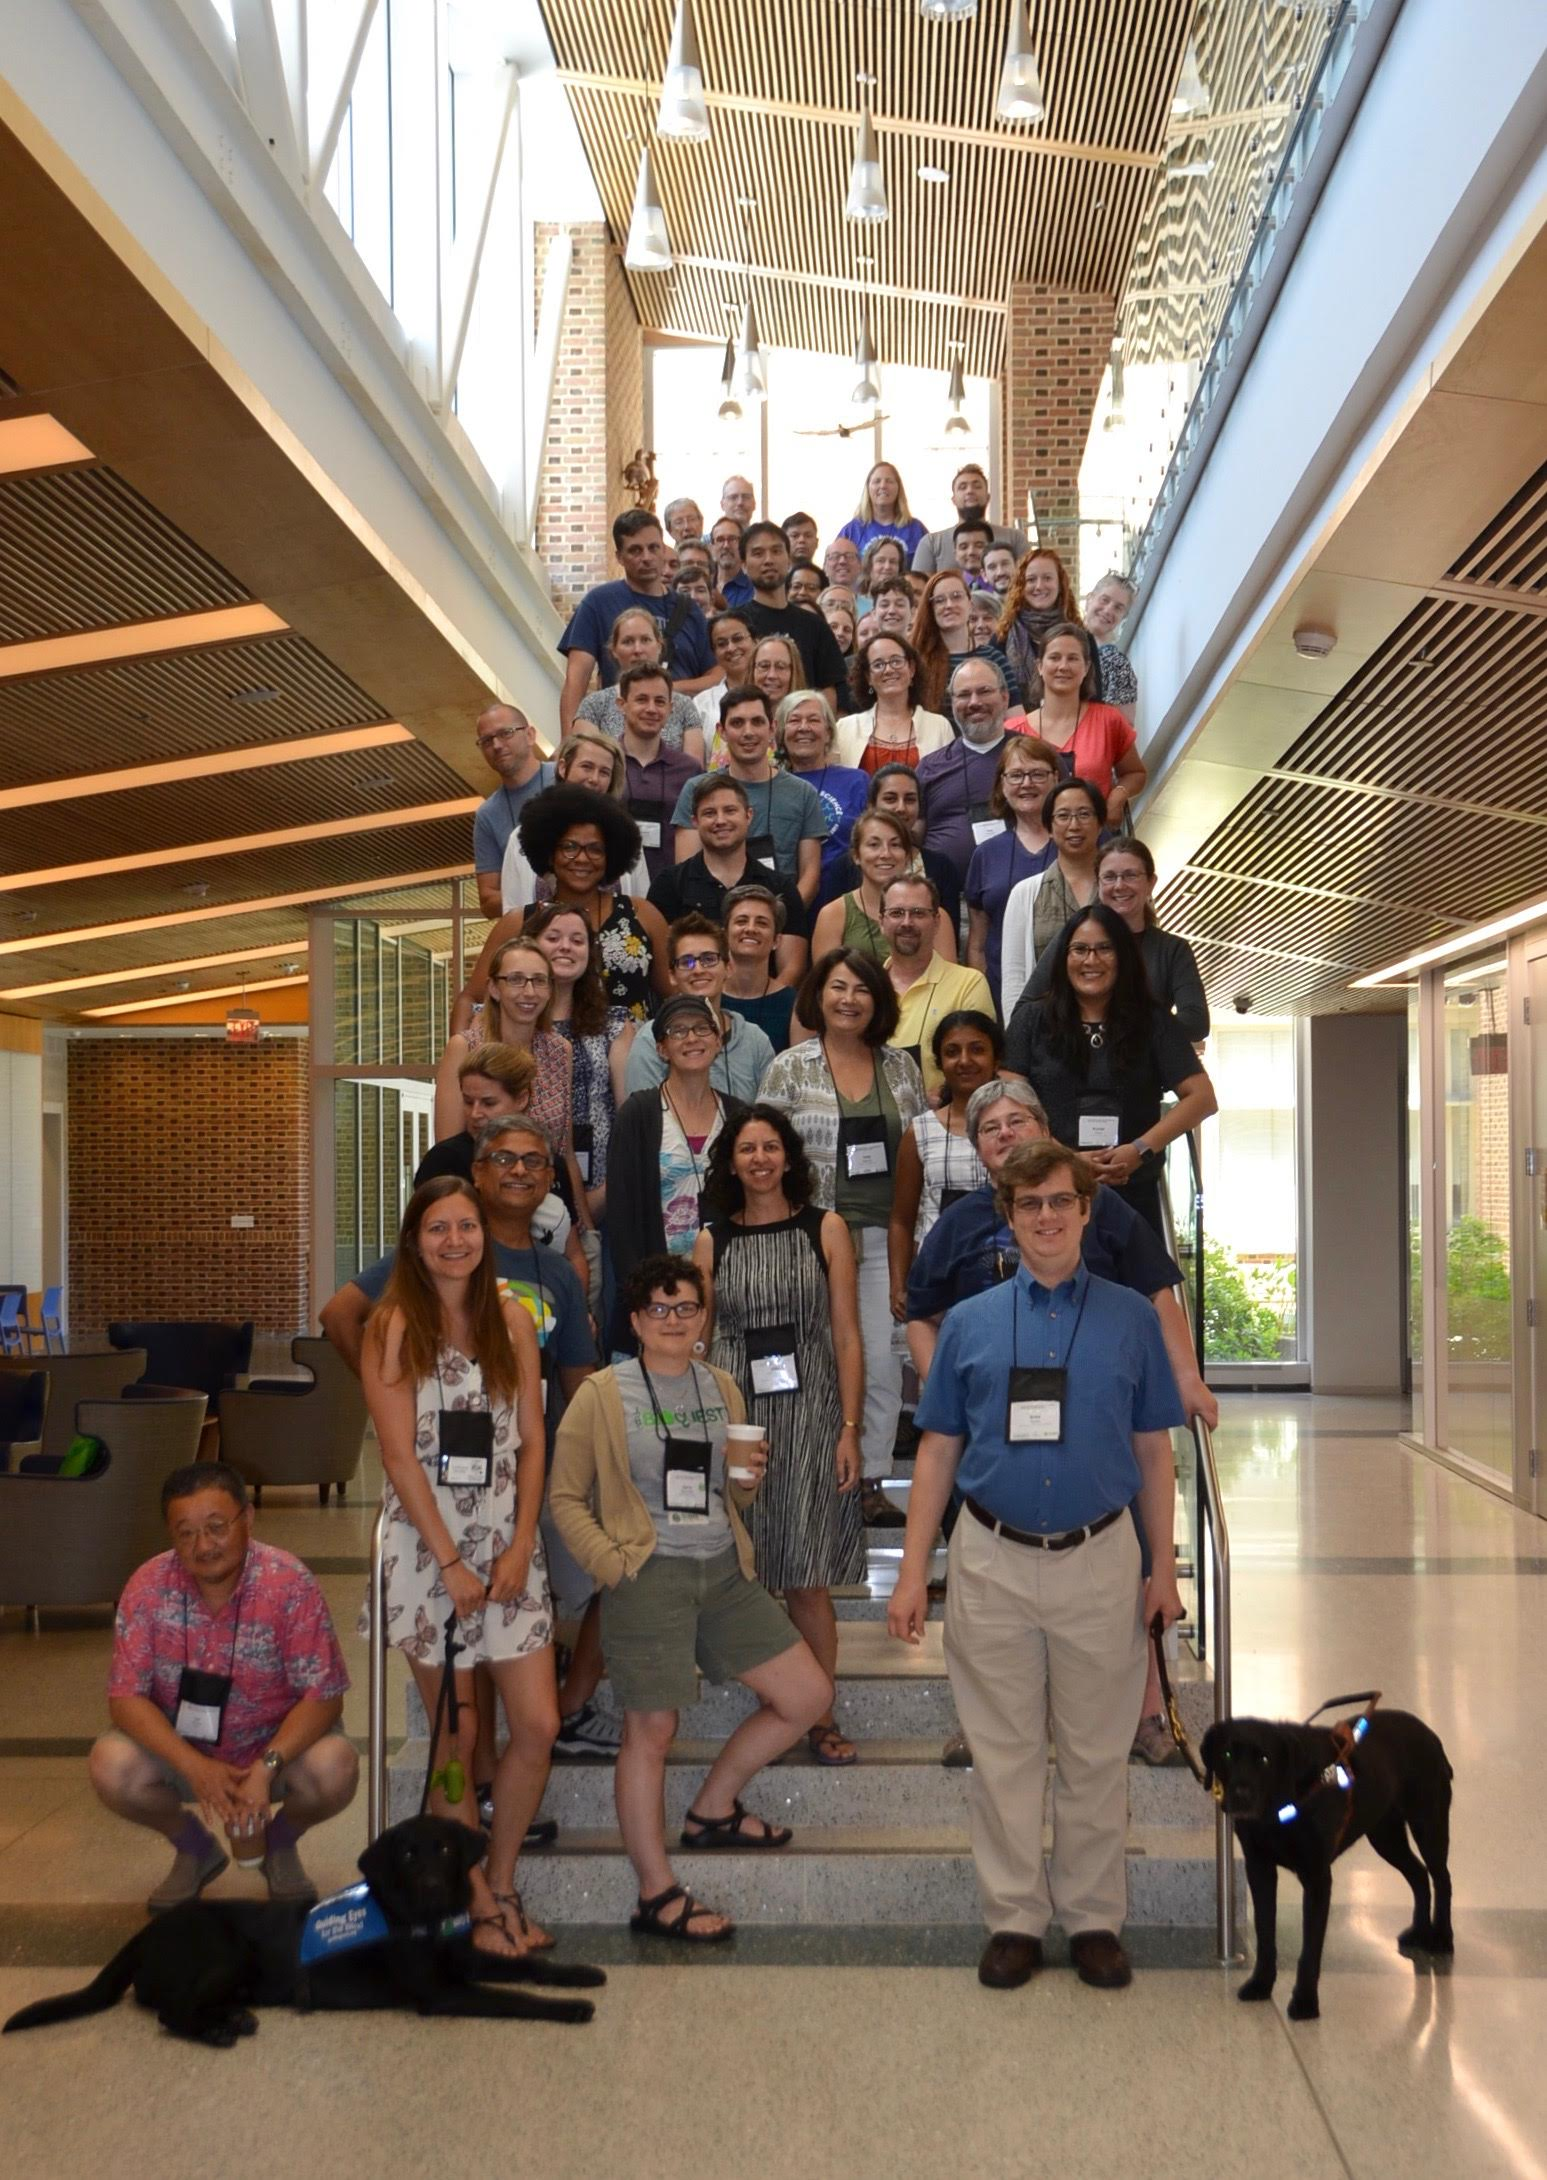 QUBES/BioQUEST Summer Workshop 2019 Group Picture